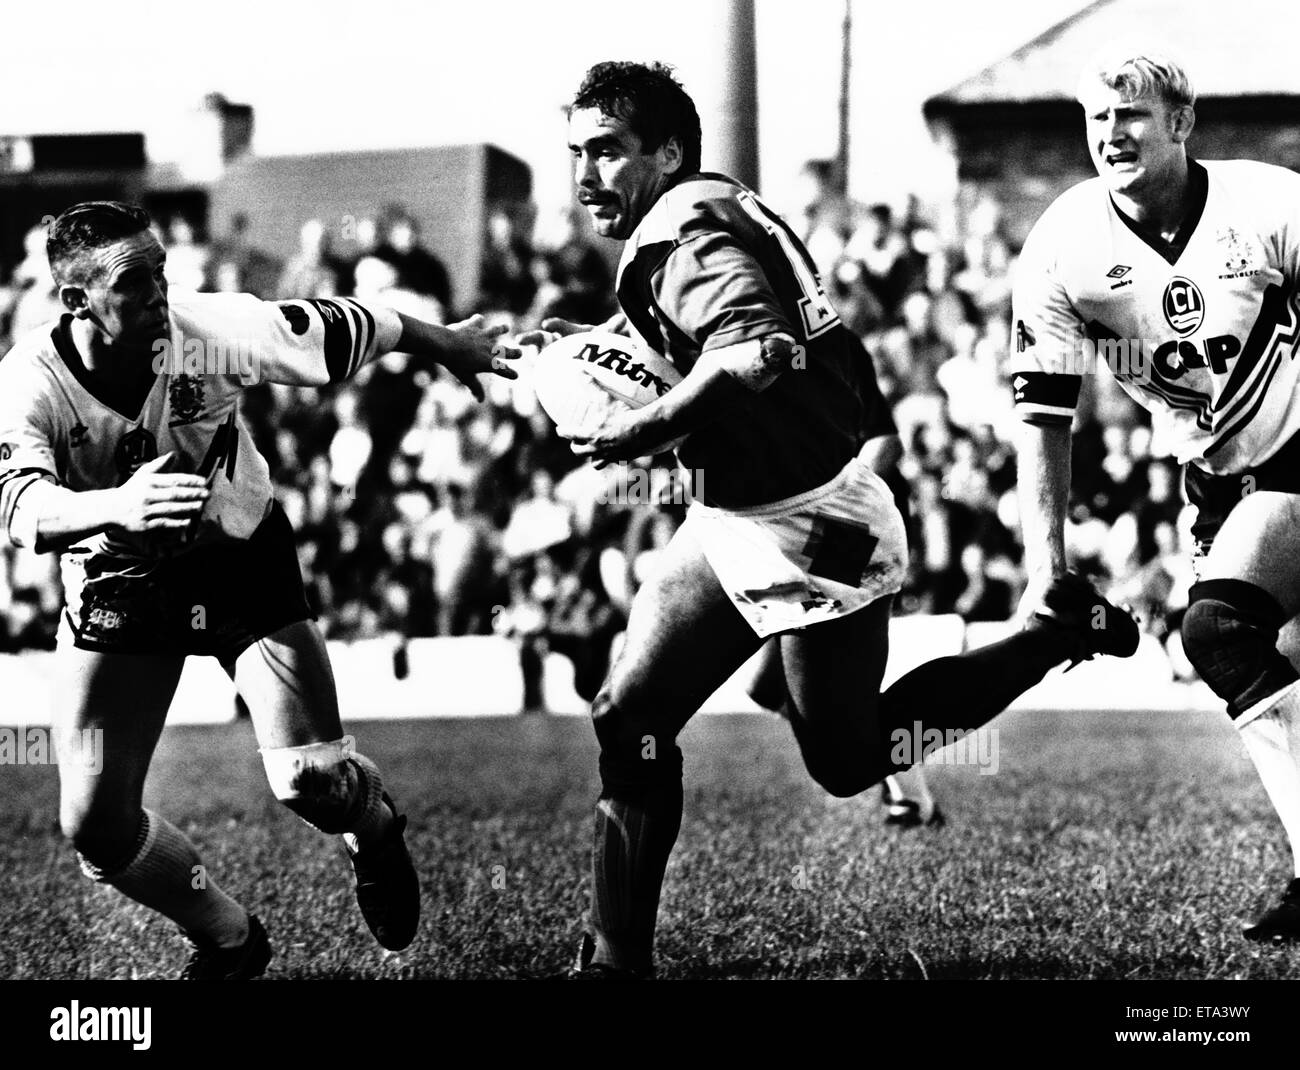 Wides 12 - 24 Bradford Northern Rugby match. 21st September 1992. - Stock Image